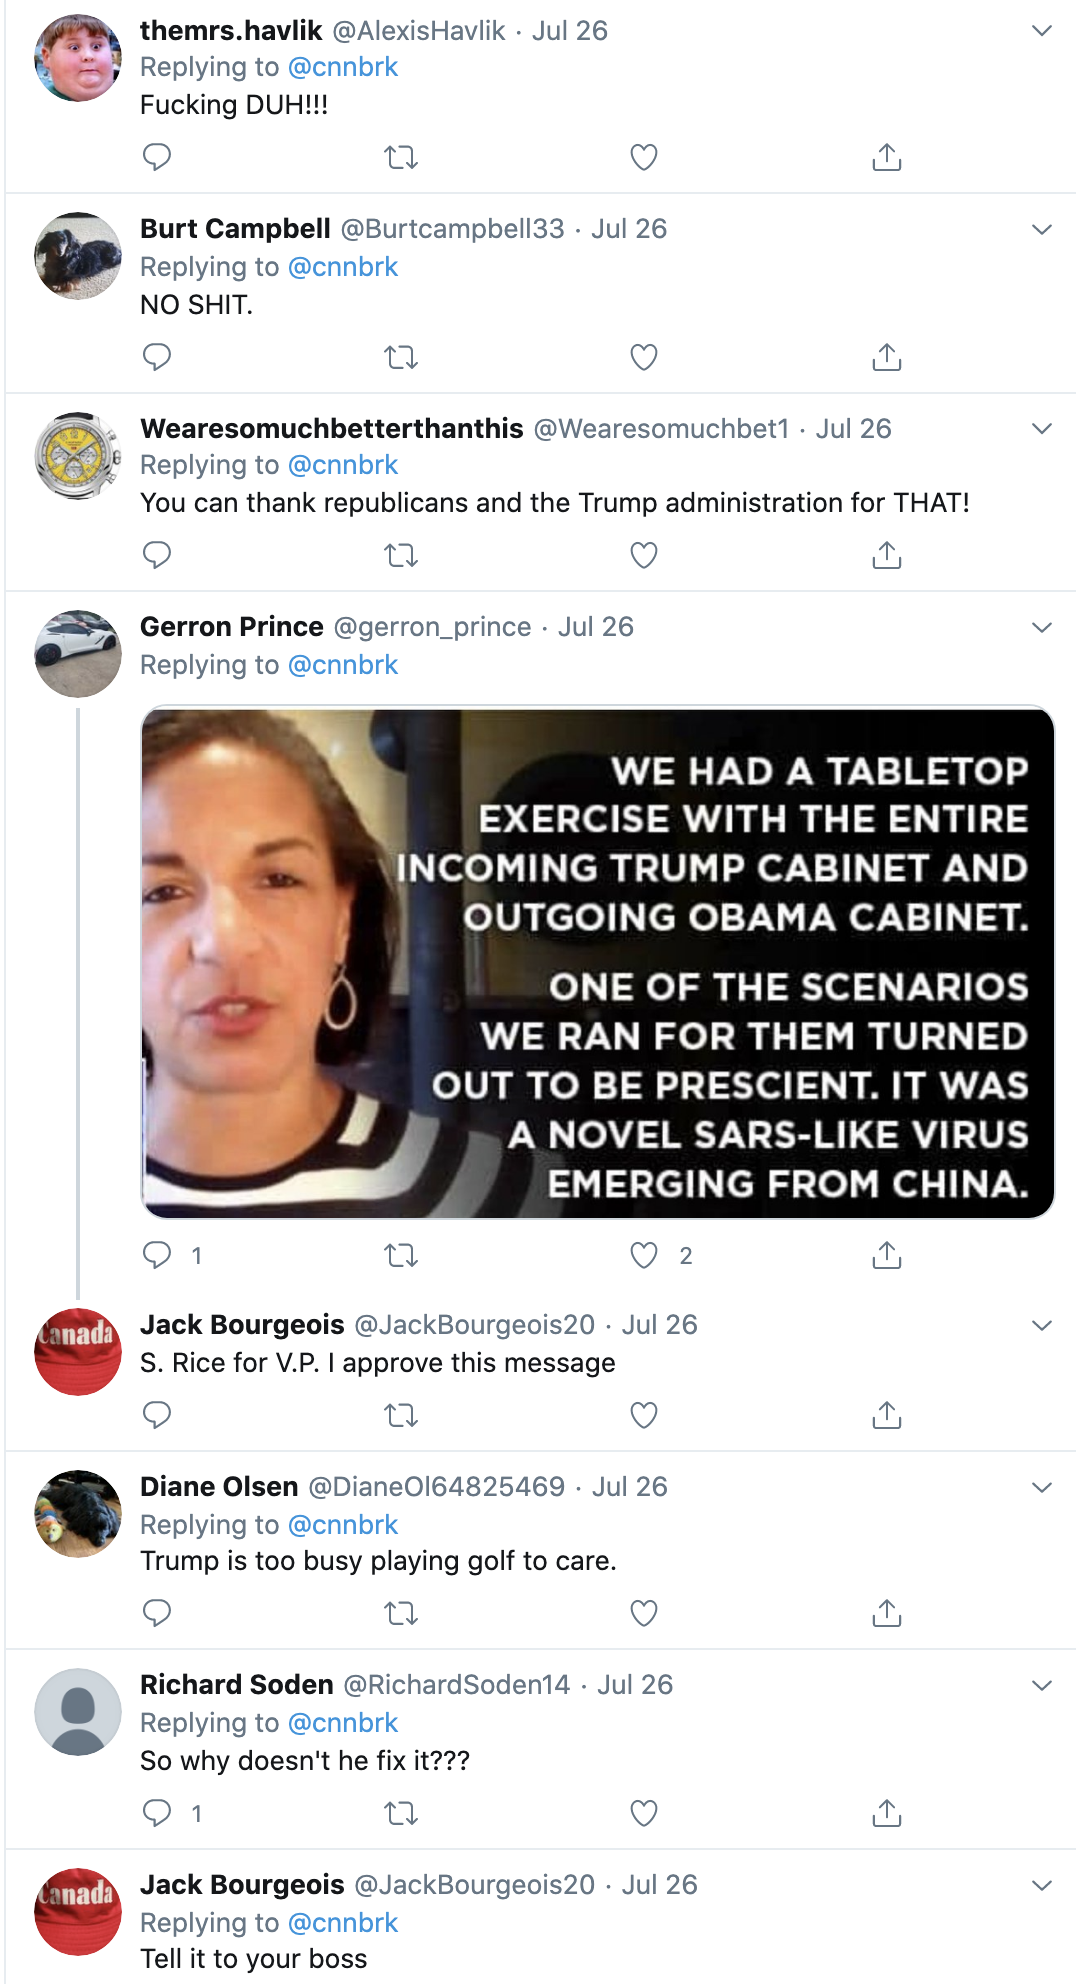 Screen-Shot-2020-08-02-at-12.32.30-PM W.H. Testing Czar Embarrasses Trump Over Hydroxychloroquine Coronavirus Featured National Security Politics Top Stories